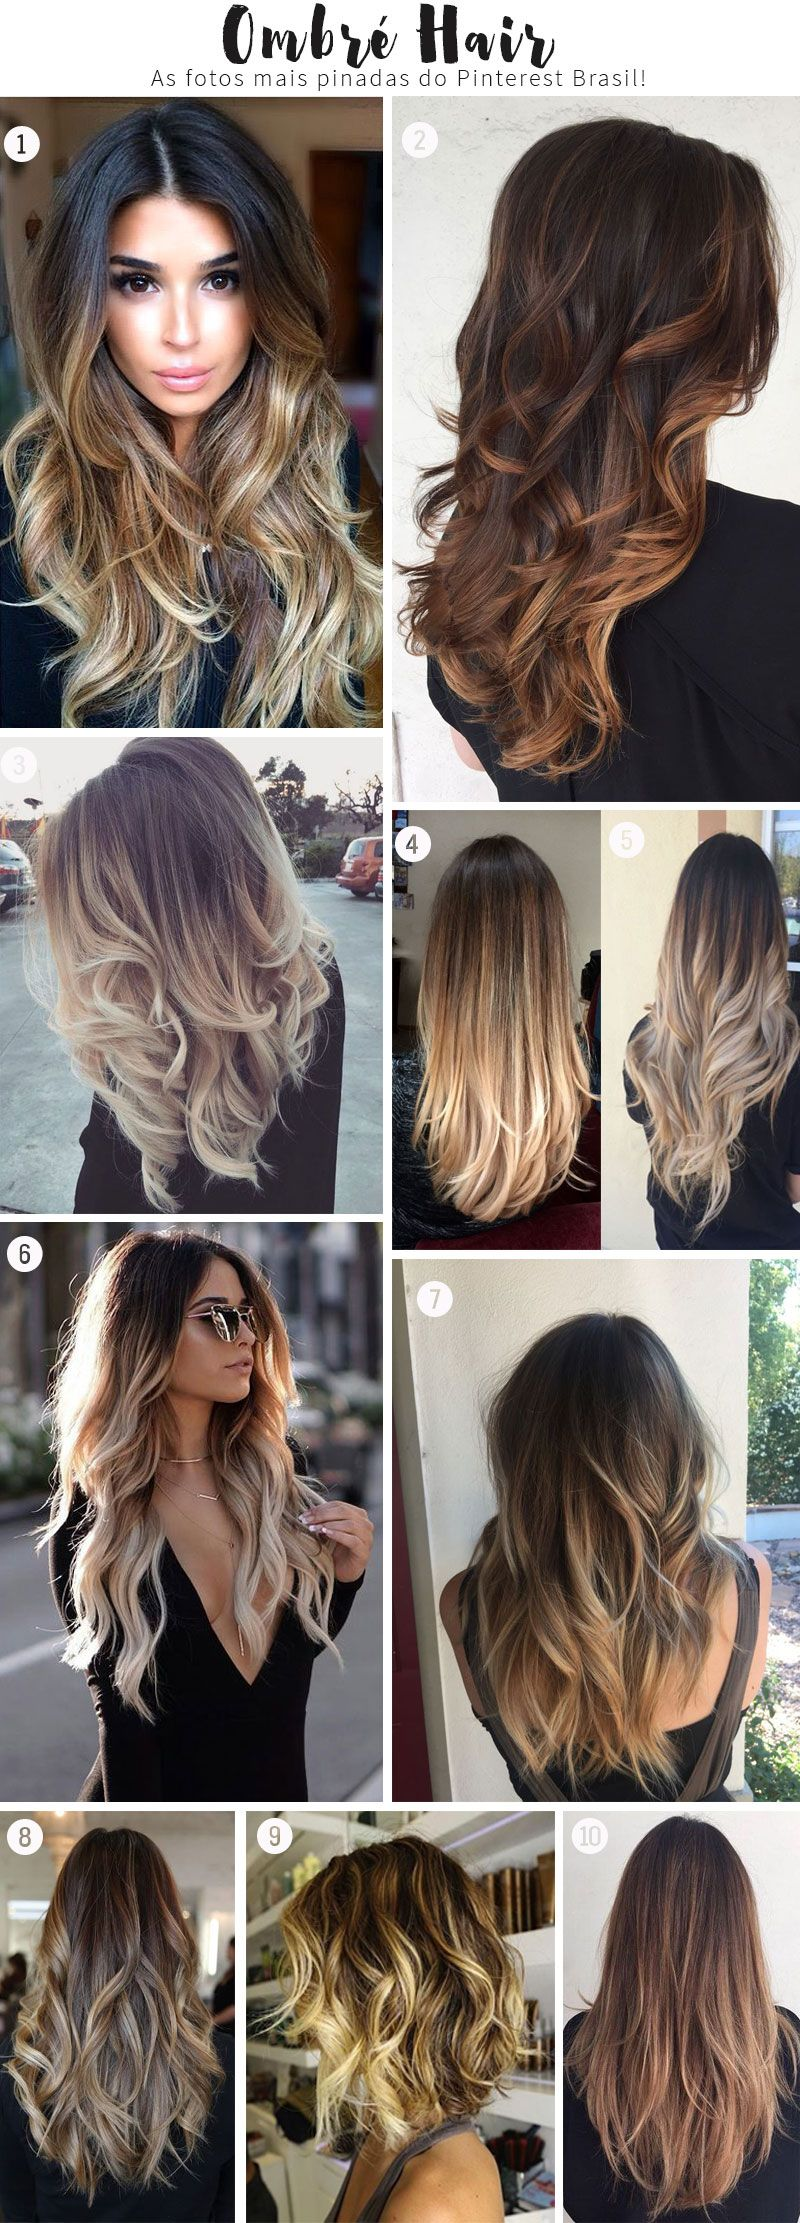 Ombr Hair Os Mais Lindos E Pinados Do Pinterest Peinados